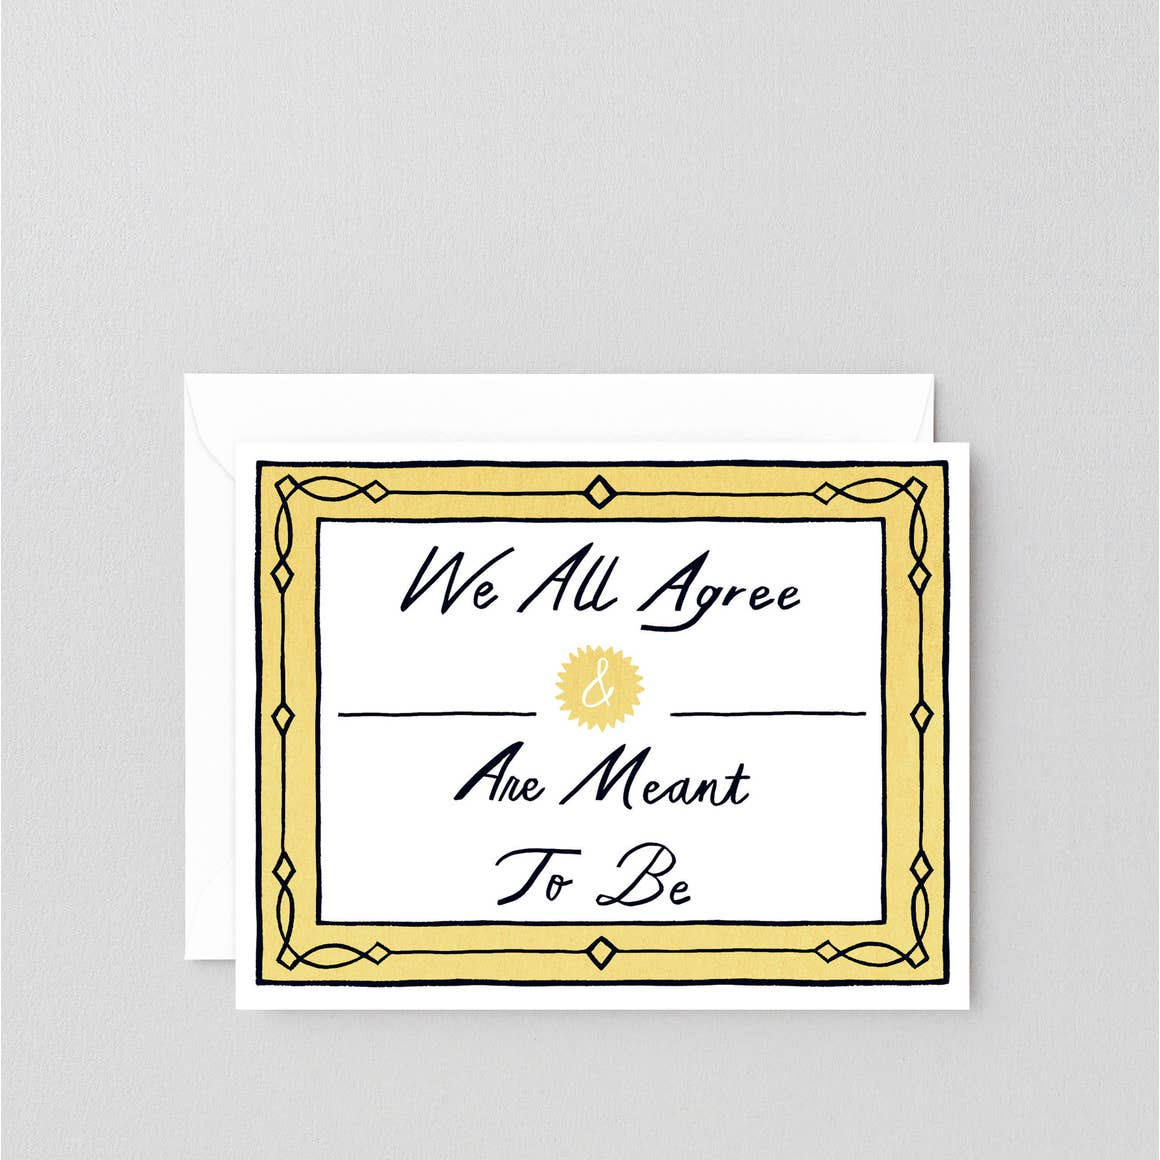 Meant to Be - card